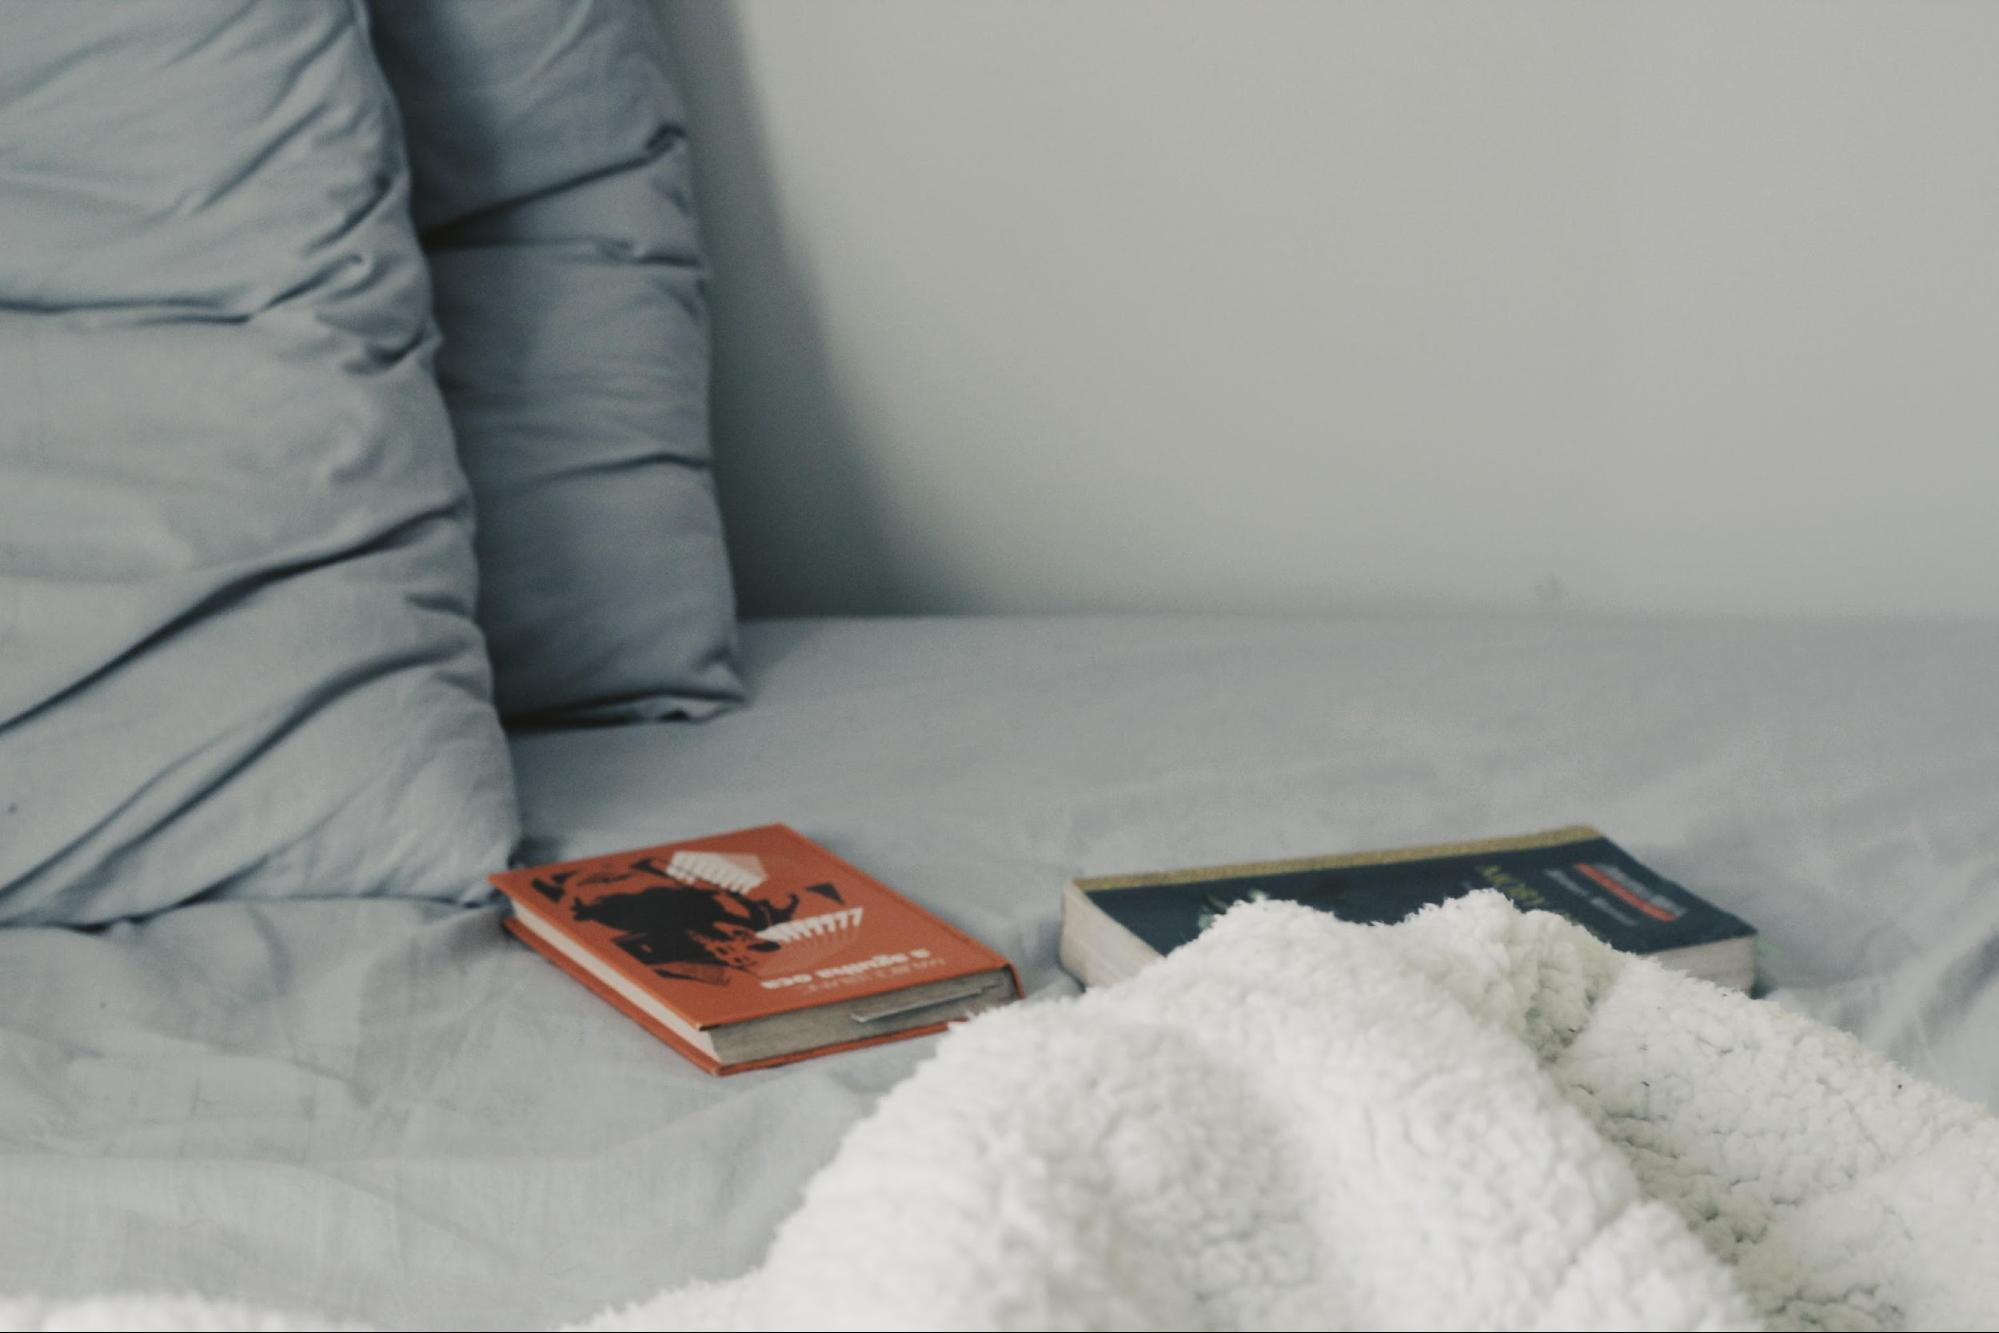 books instead of phone on a bed